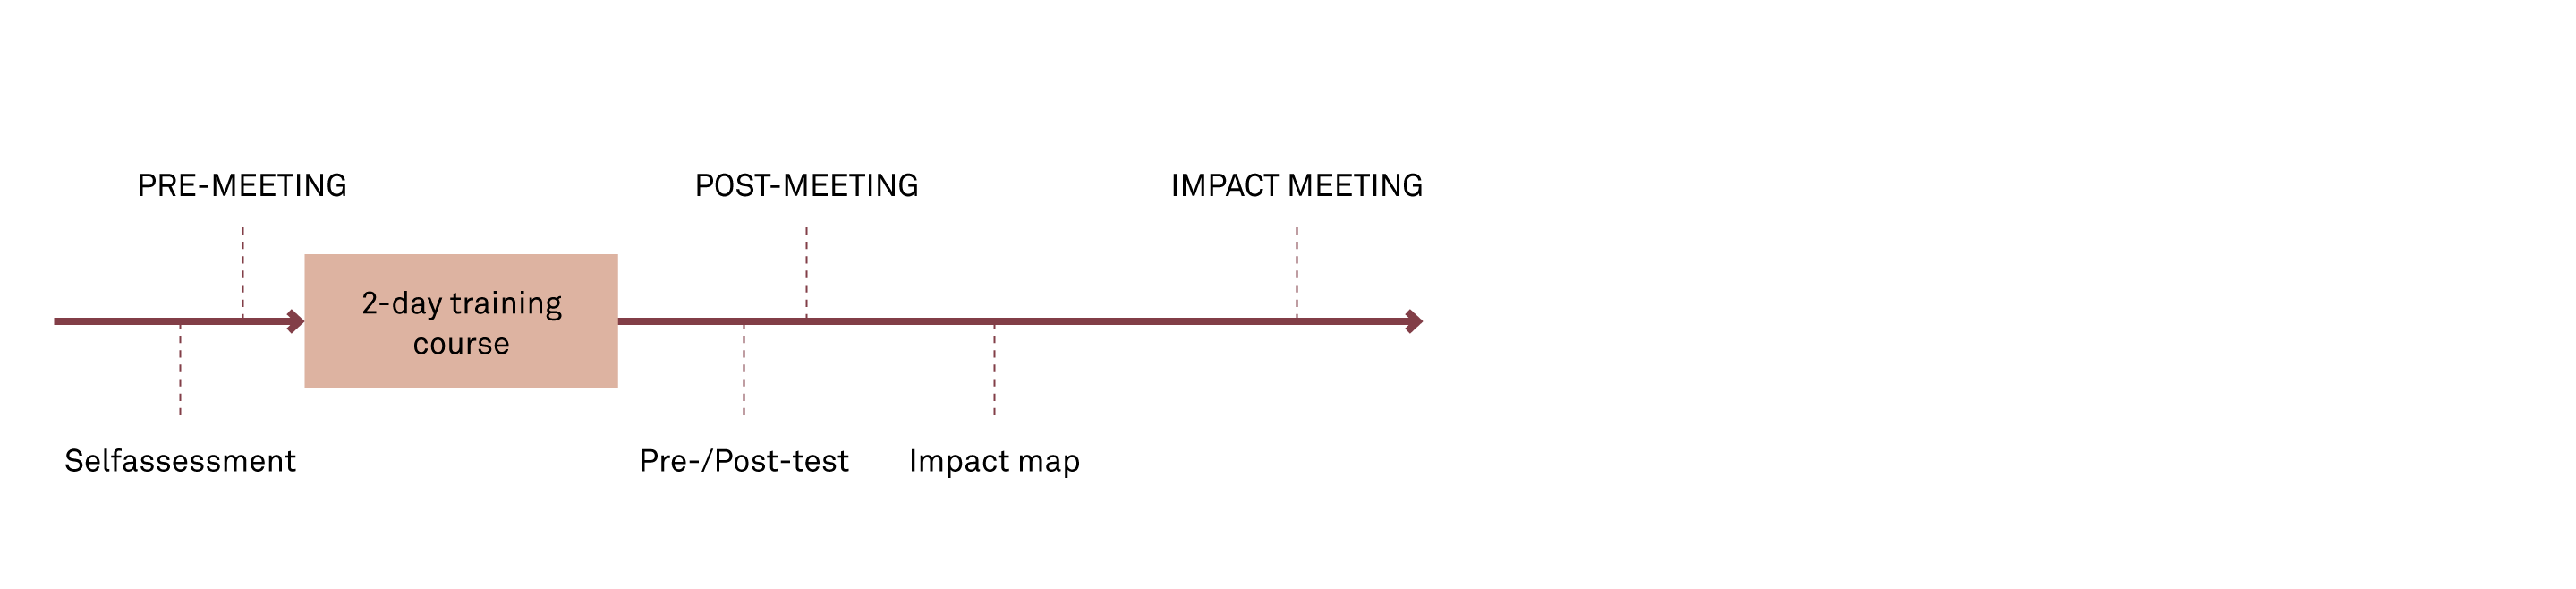 project impact diagram honeywell zone valve wiring measuring the of training implement consulting group process design for managers in using framework